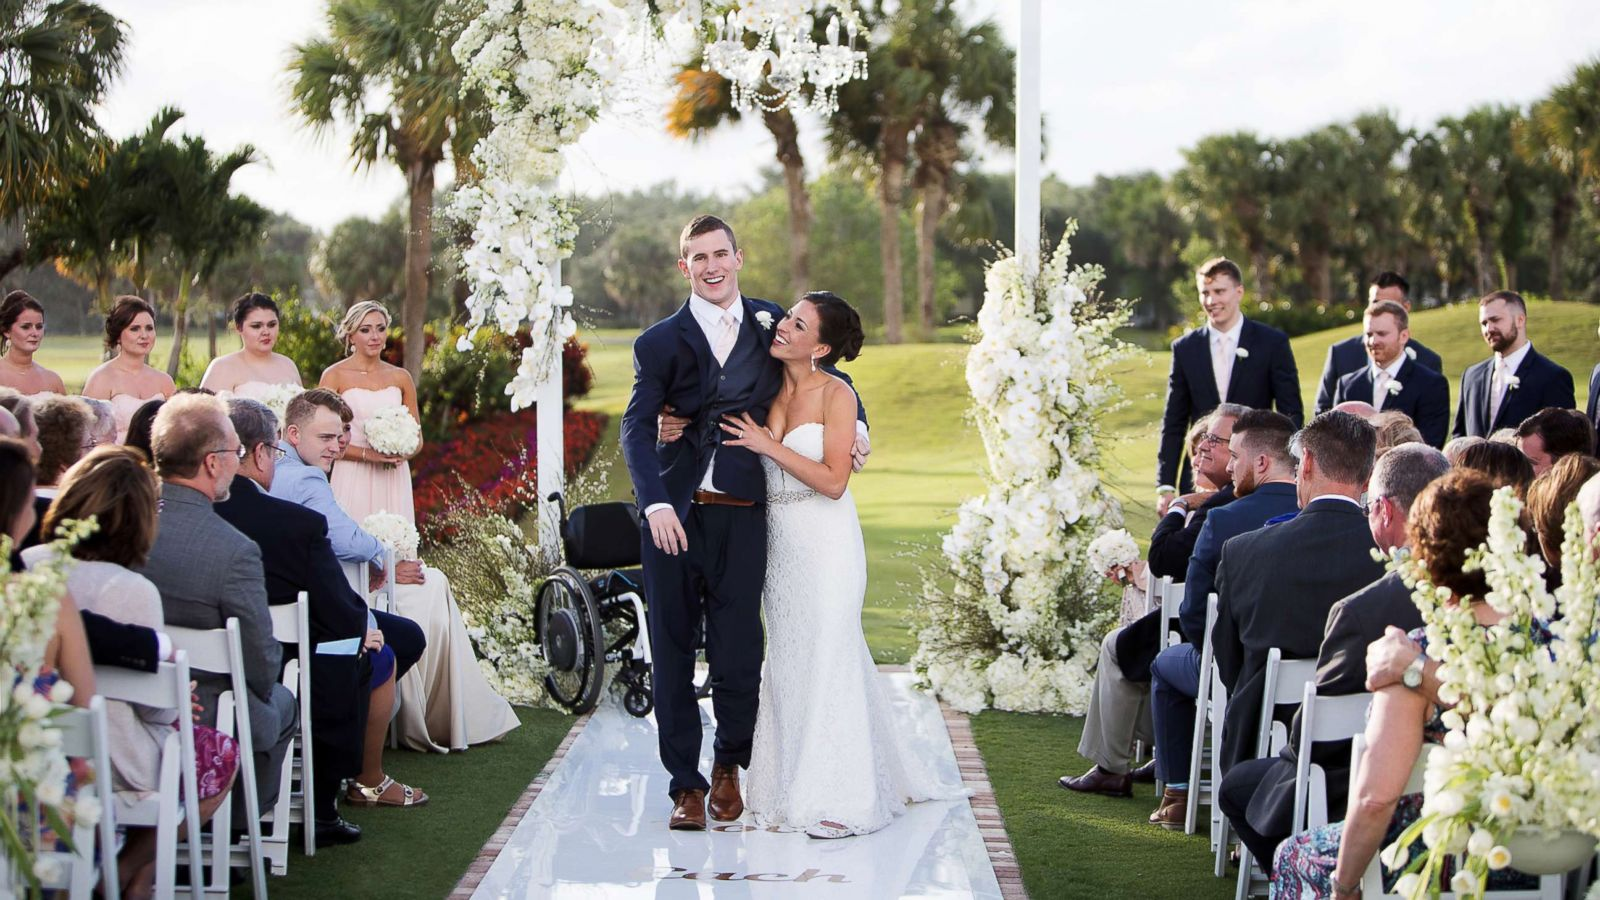 After 7 Years In Wheelchair Groom Walks Down Aisle On His